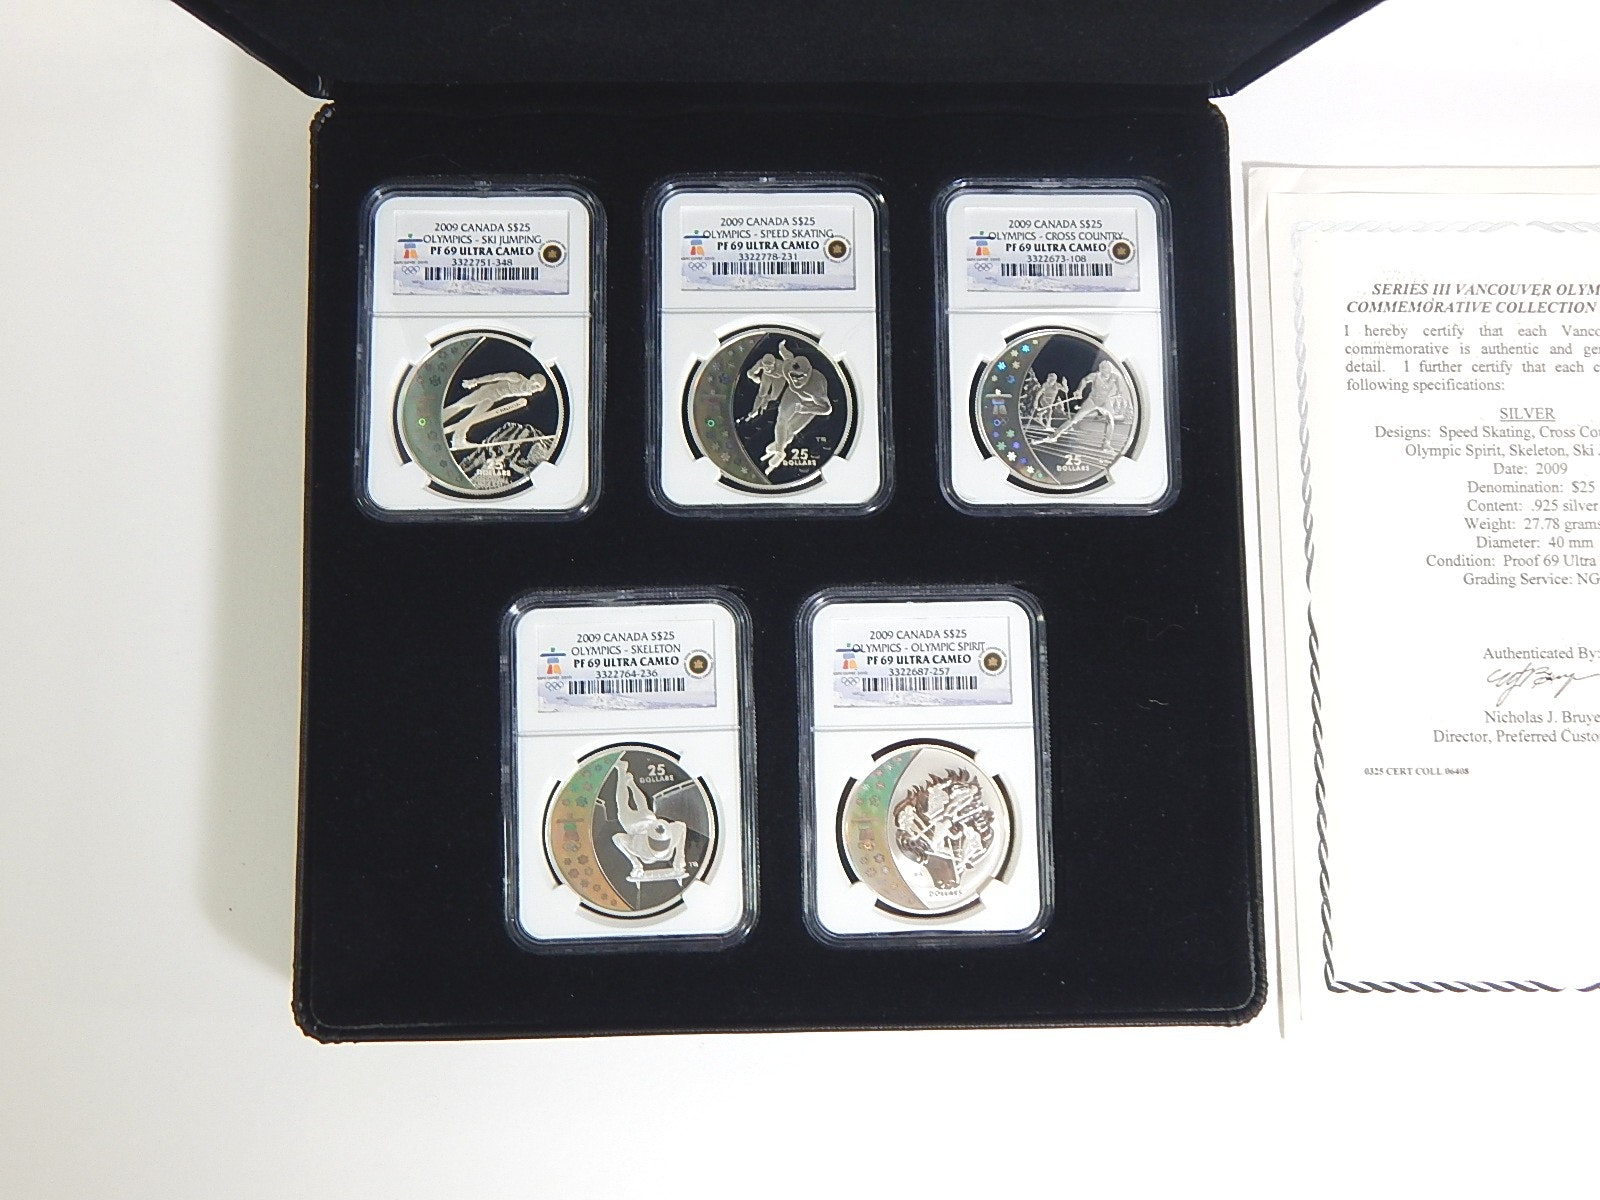 2009 Collection of Vancouver Winter Olympics Silver Coins